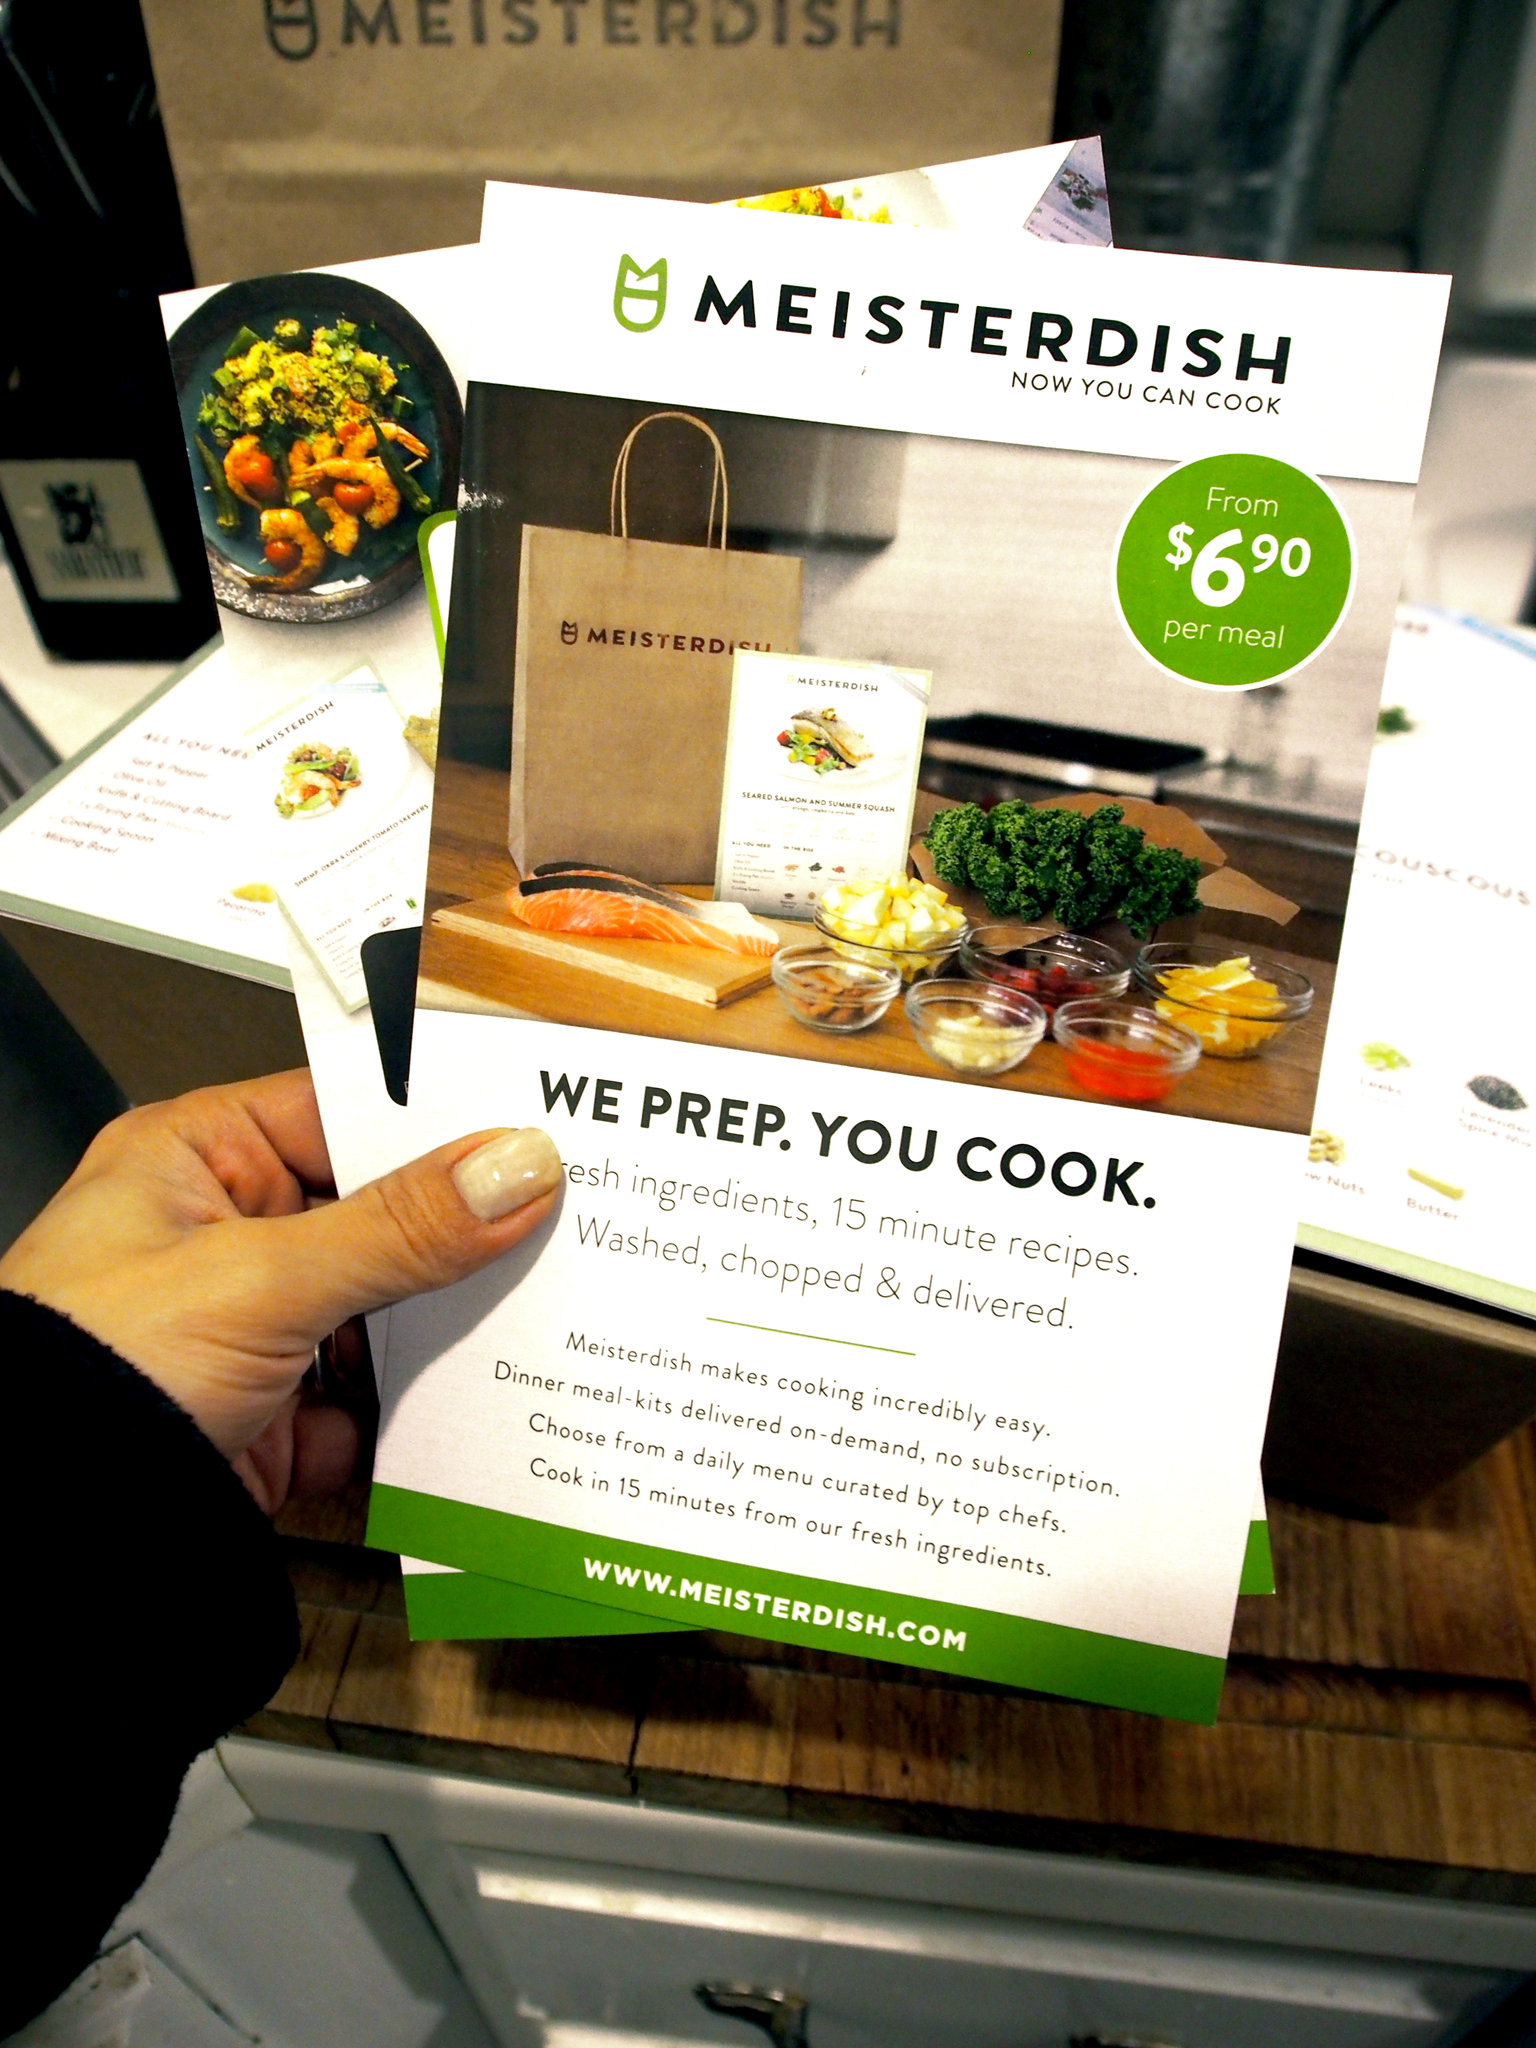 Incredibly easy dinner meal kits delivered on-demand, no subscription.